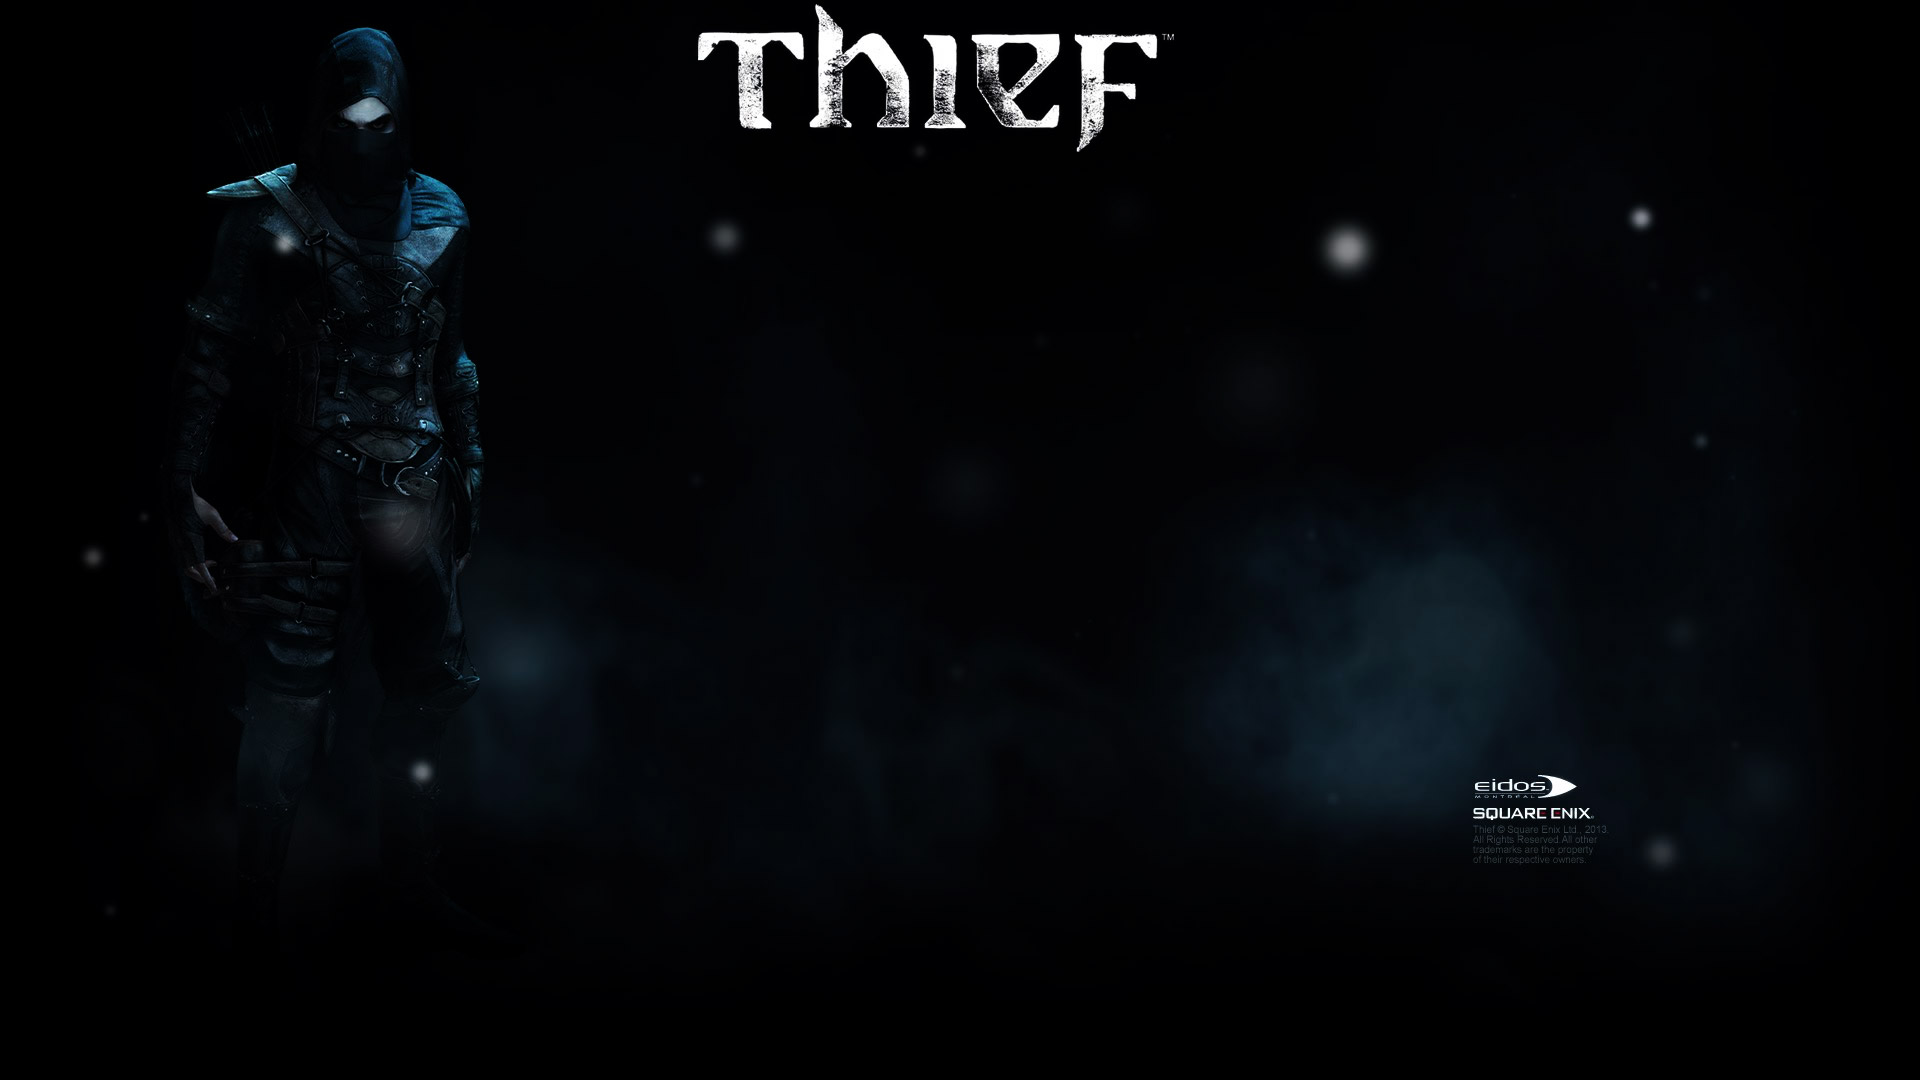 Free Thief Wallpaper in 1920x1080